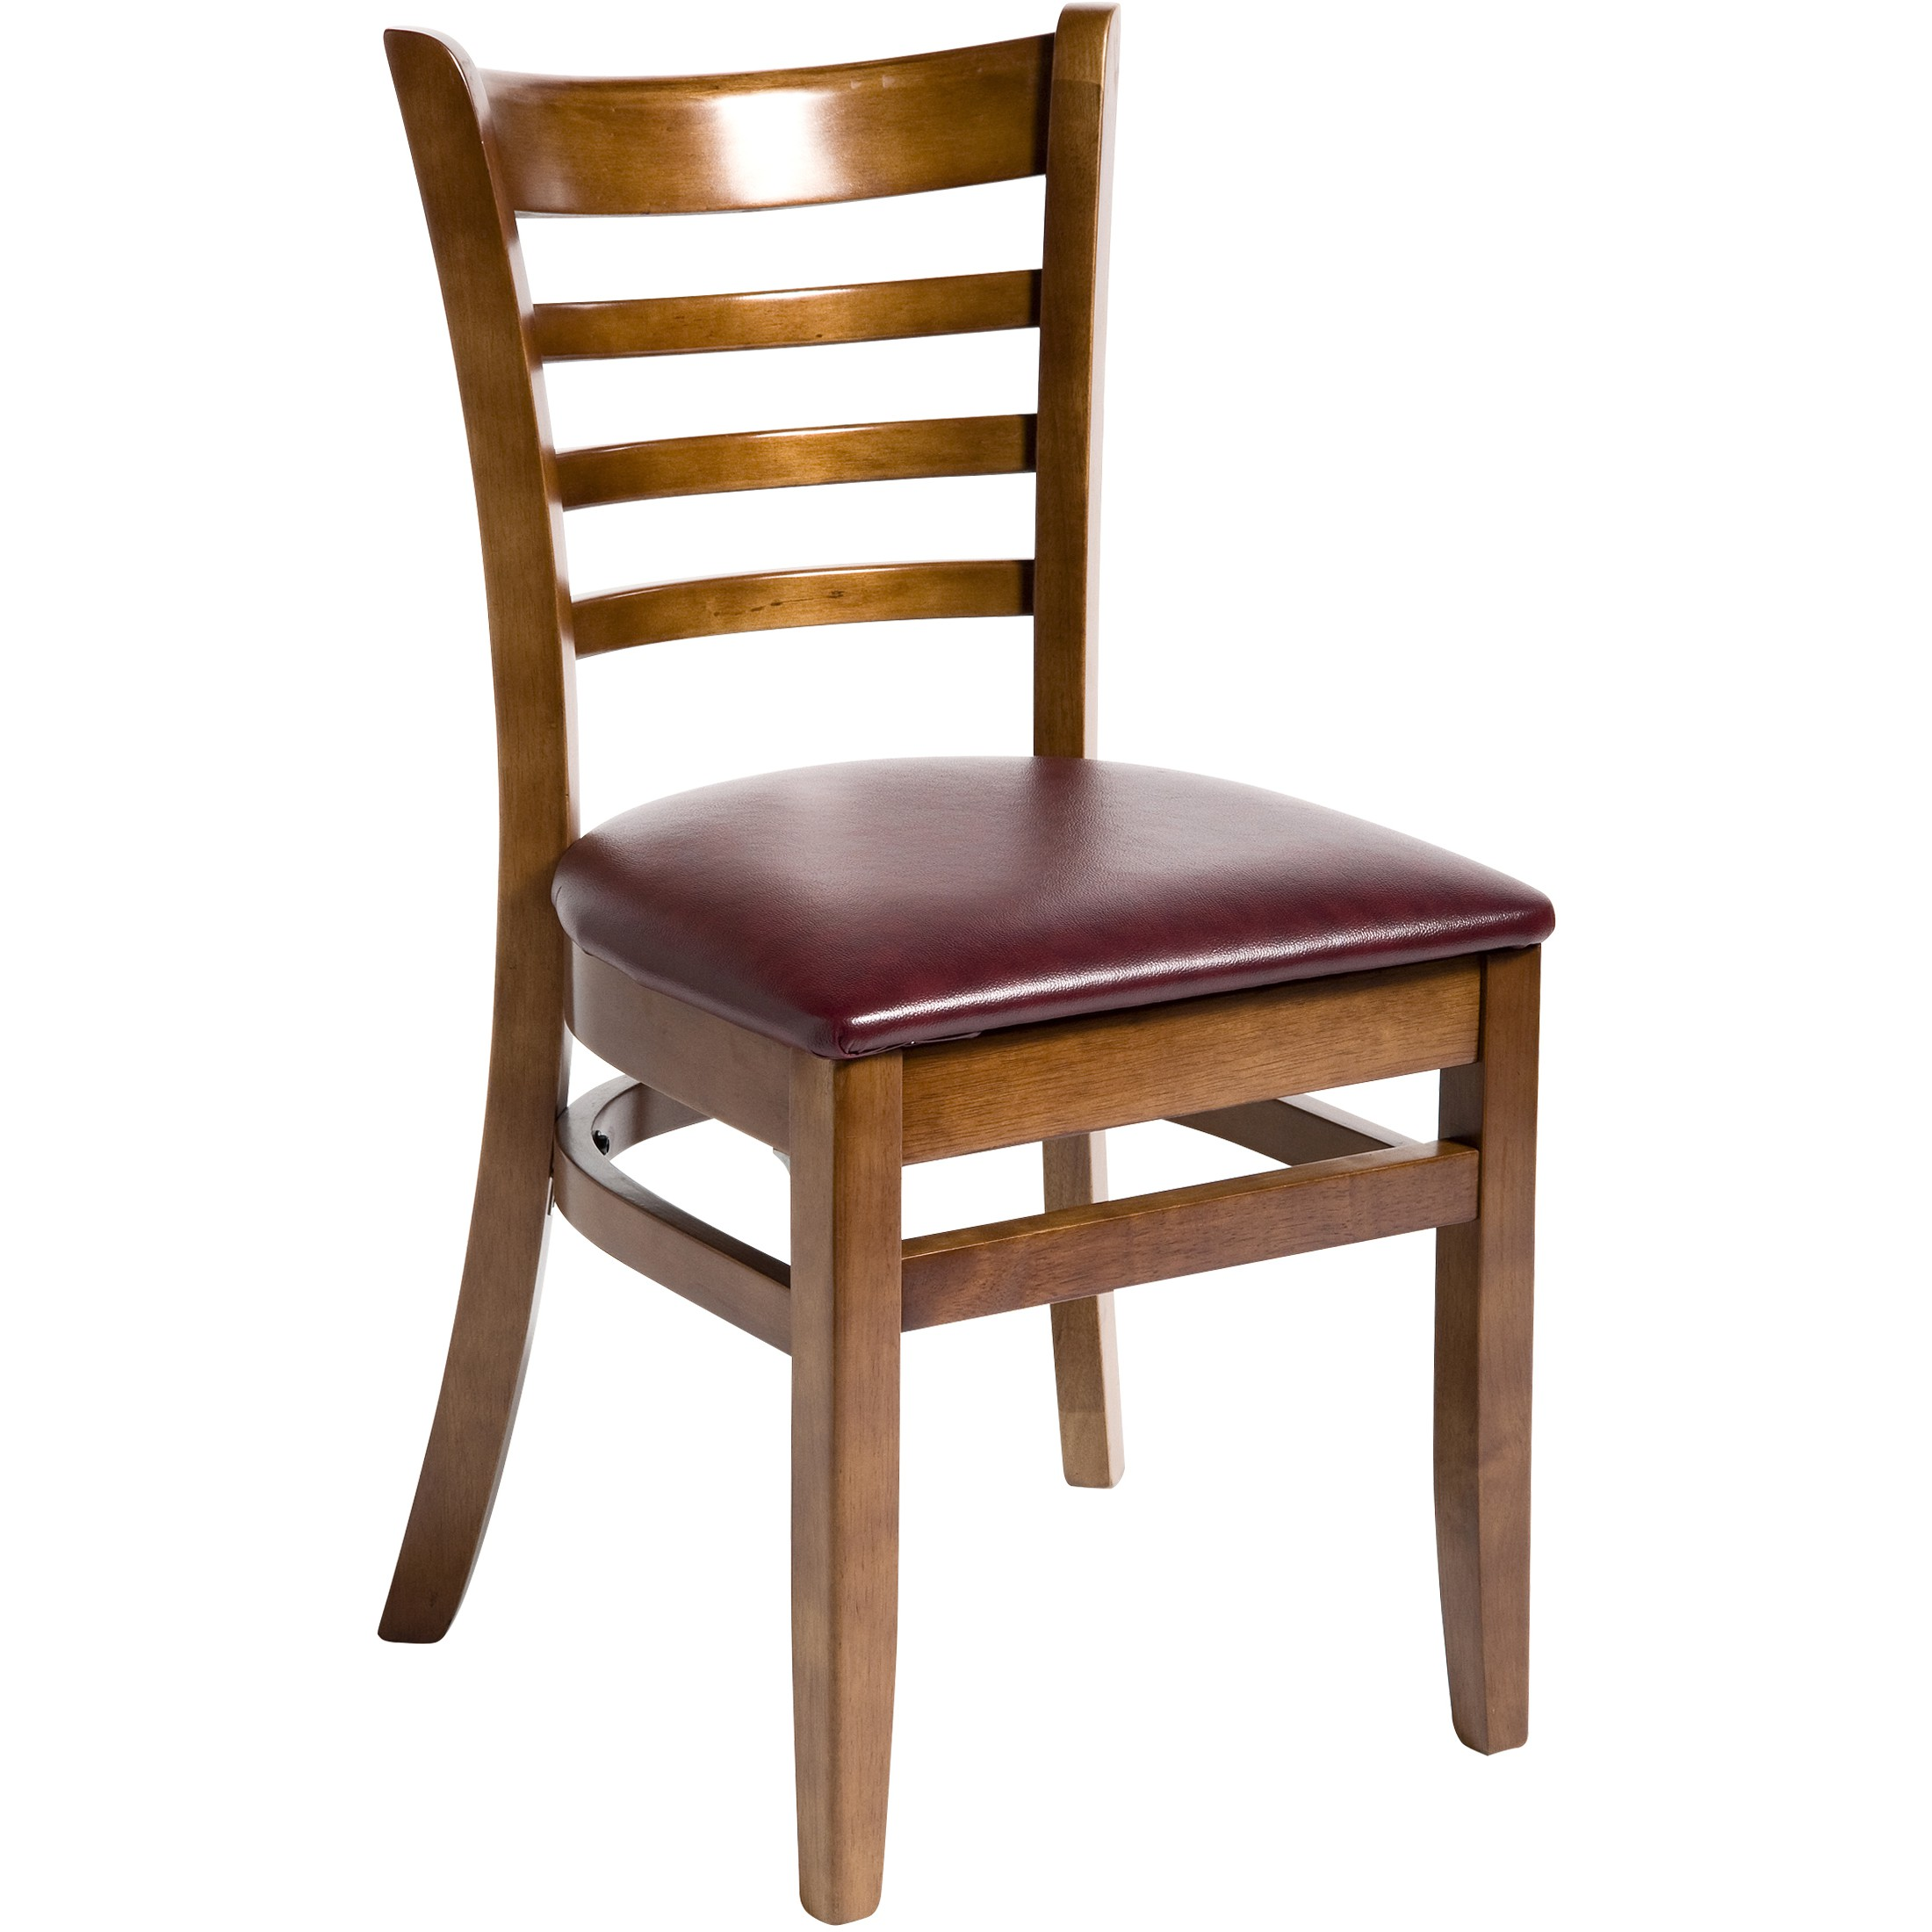 Ladder back chairs with cushions - Wood Ladder Back Chair Walnut Finish With Wine Vinyl Seat